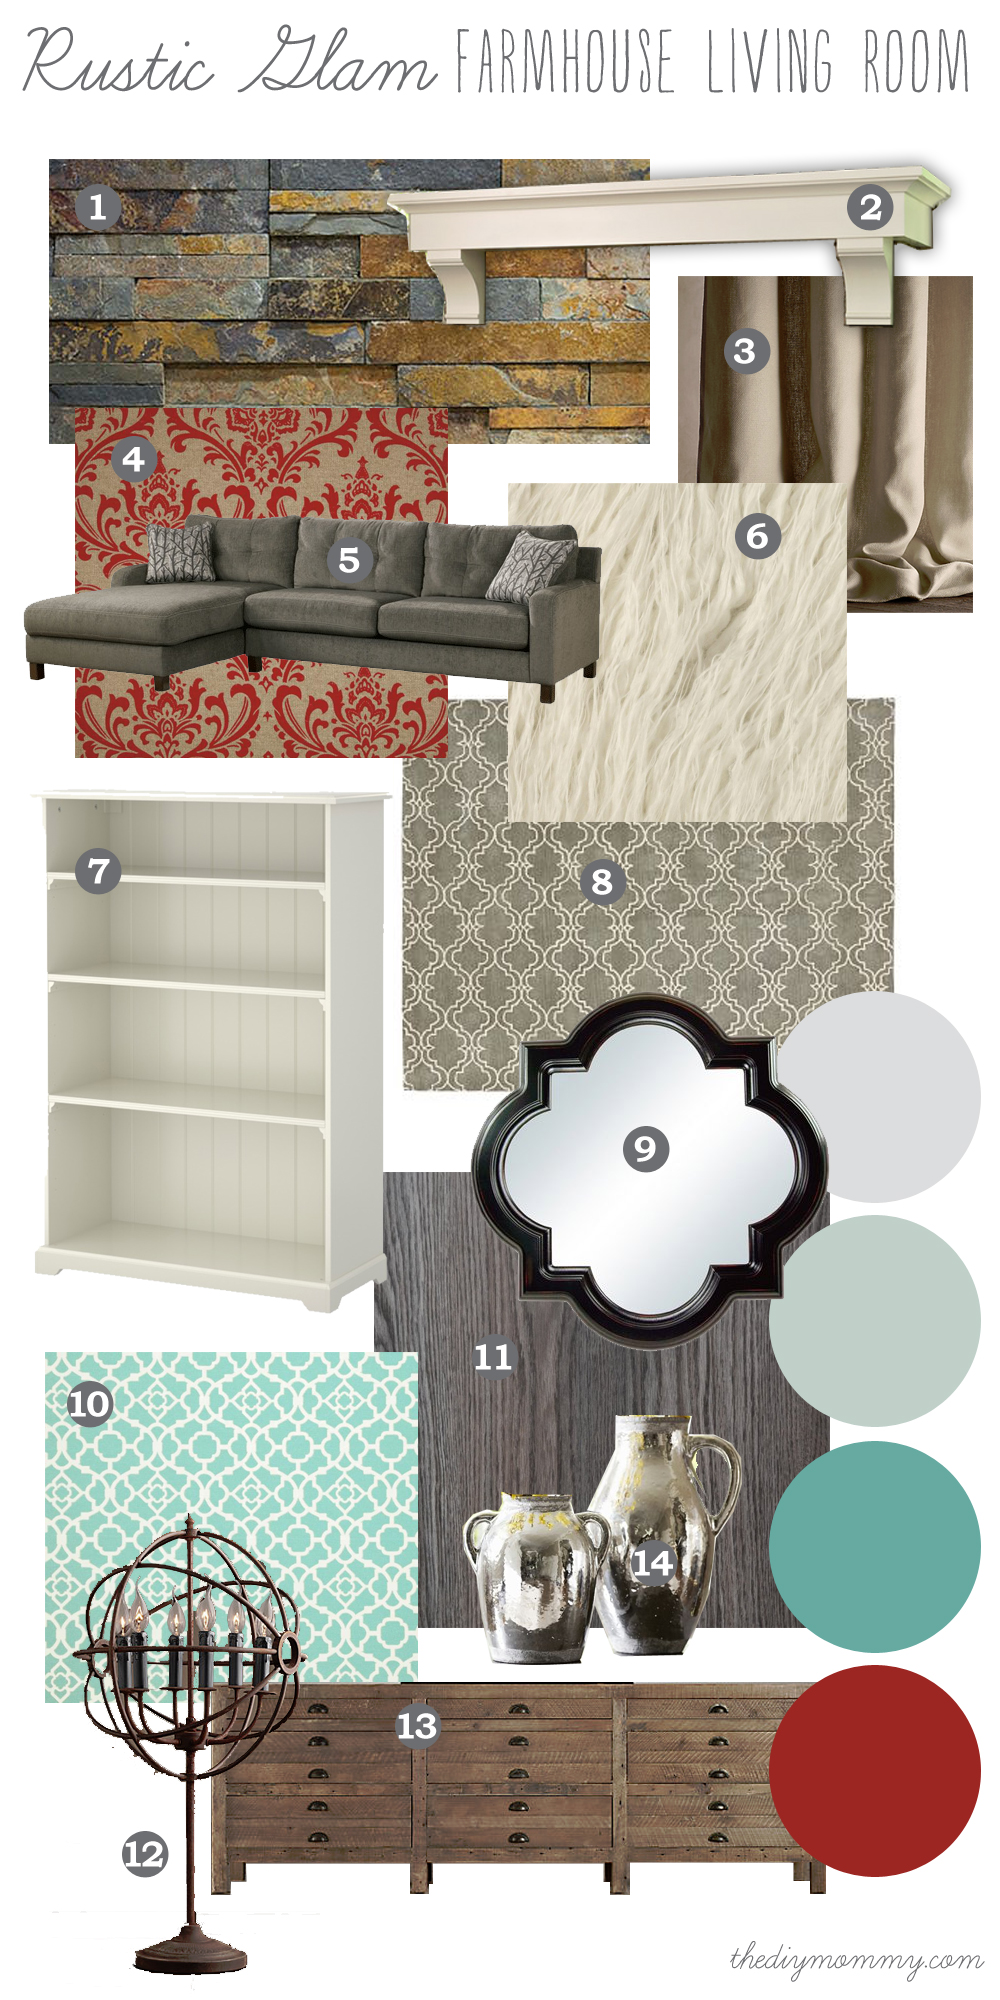 Rustic Glam Living Room mood board: rustic glam farmhouse living room – our diy house